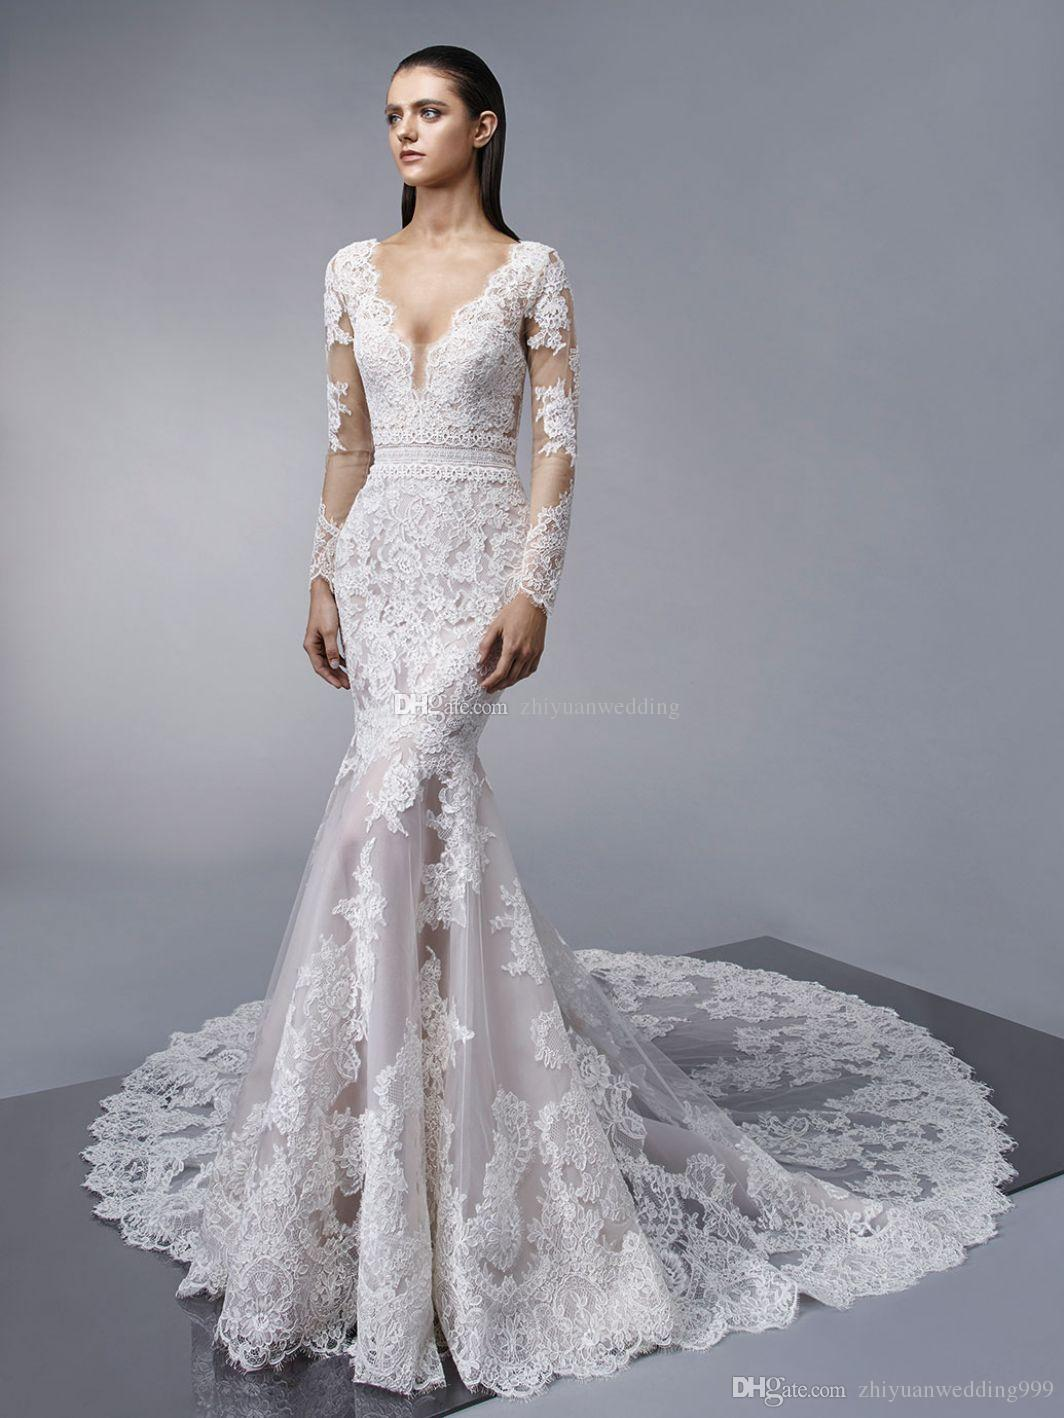 Long Sleeve Couture Wedding Dresses